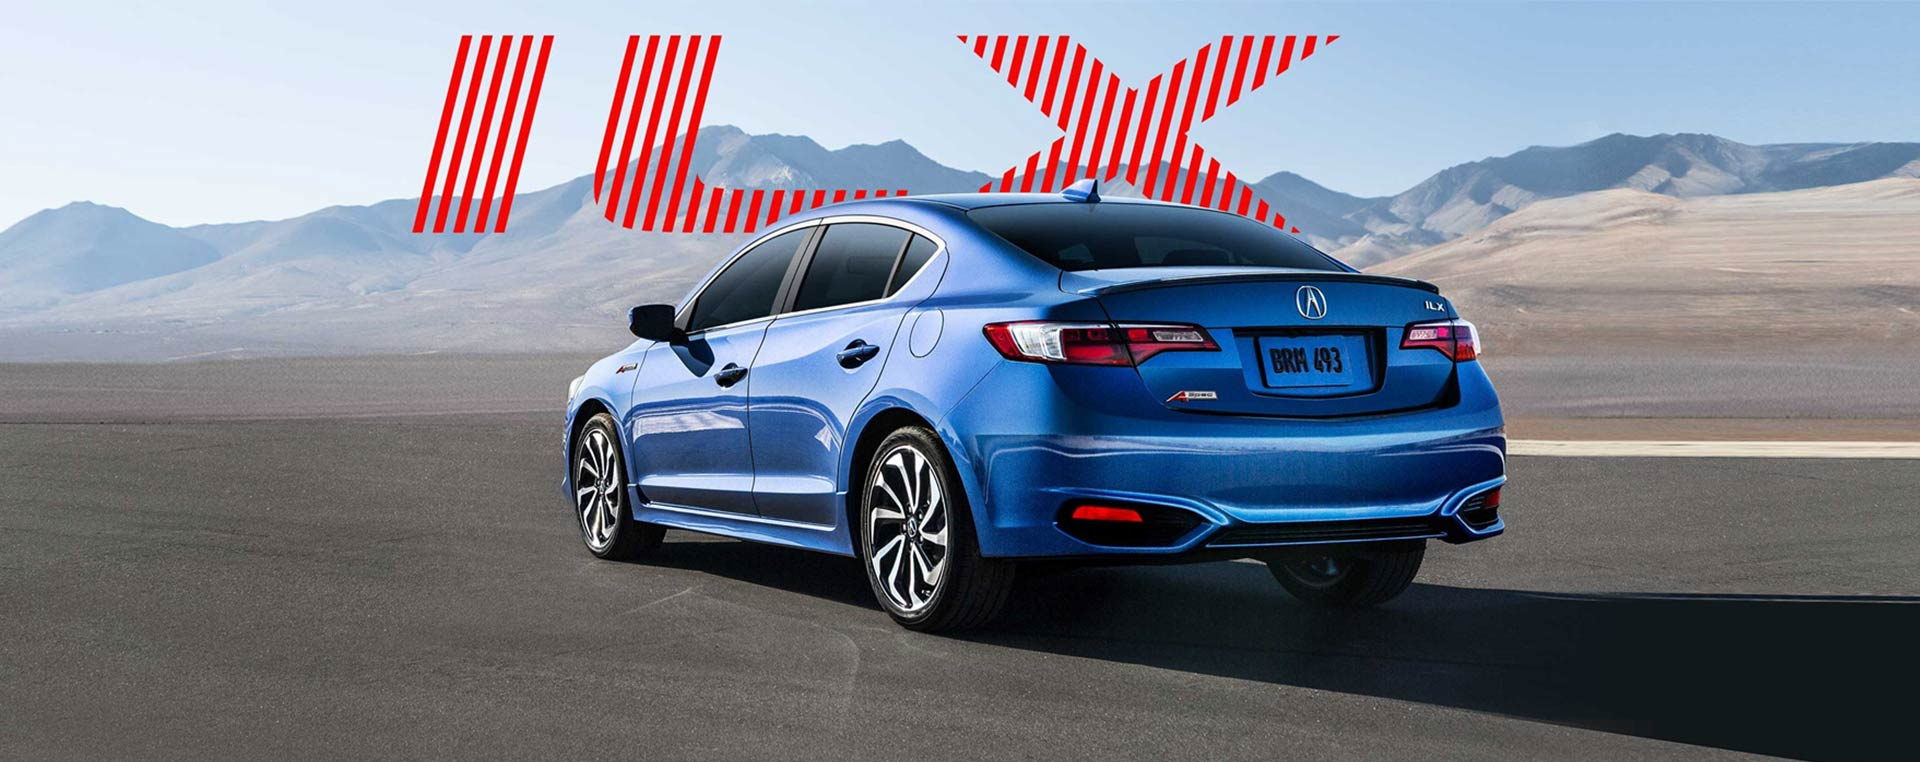 South Coast Acura >> 2018 Acura Ilx Southern California Acura Dealers